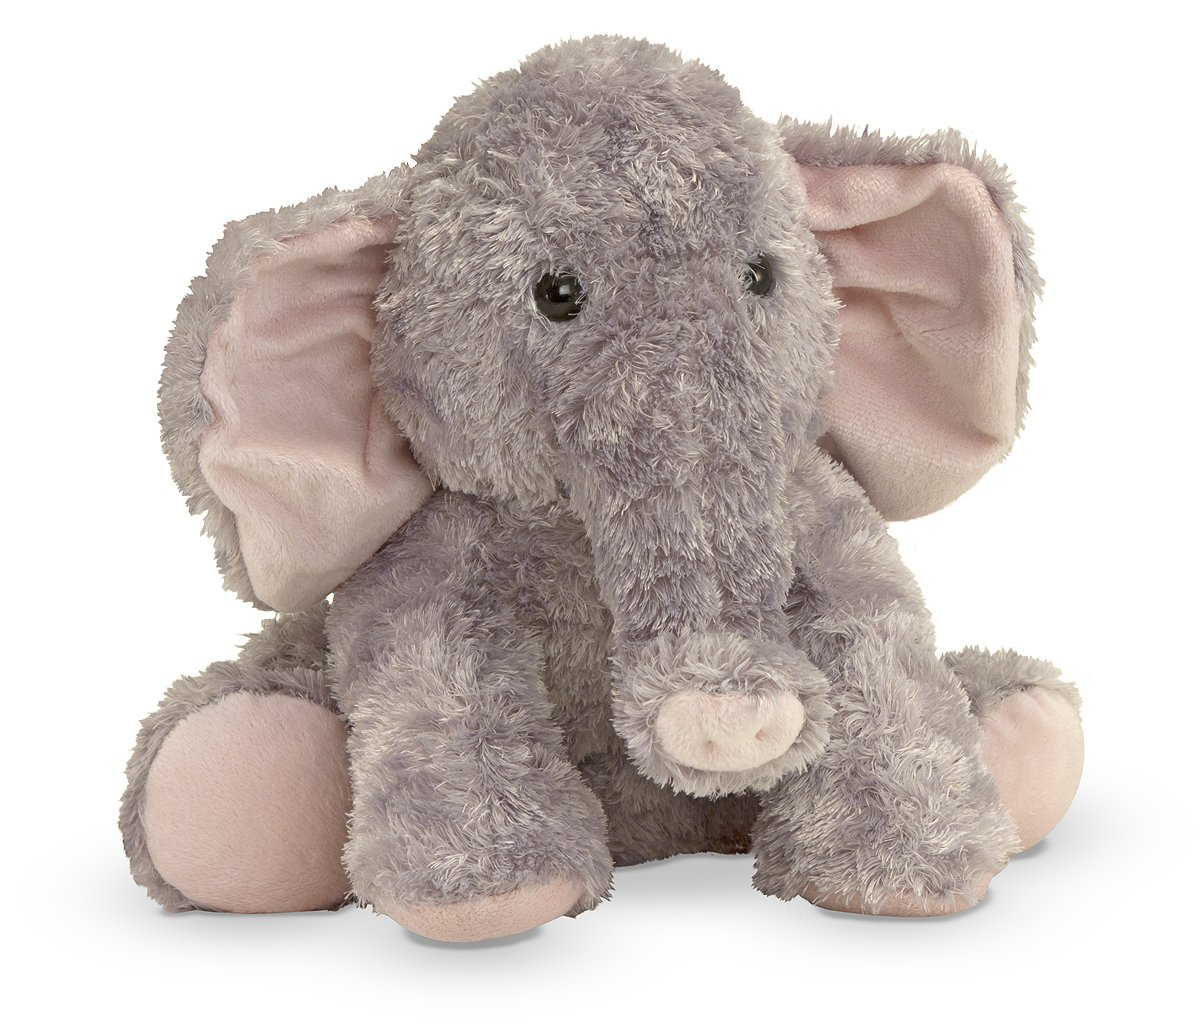 Plush Stuffed Animal Toys : Melissa and doug sterling elephant new free shipping ebay